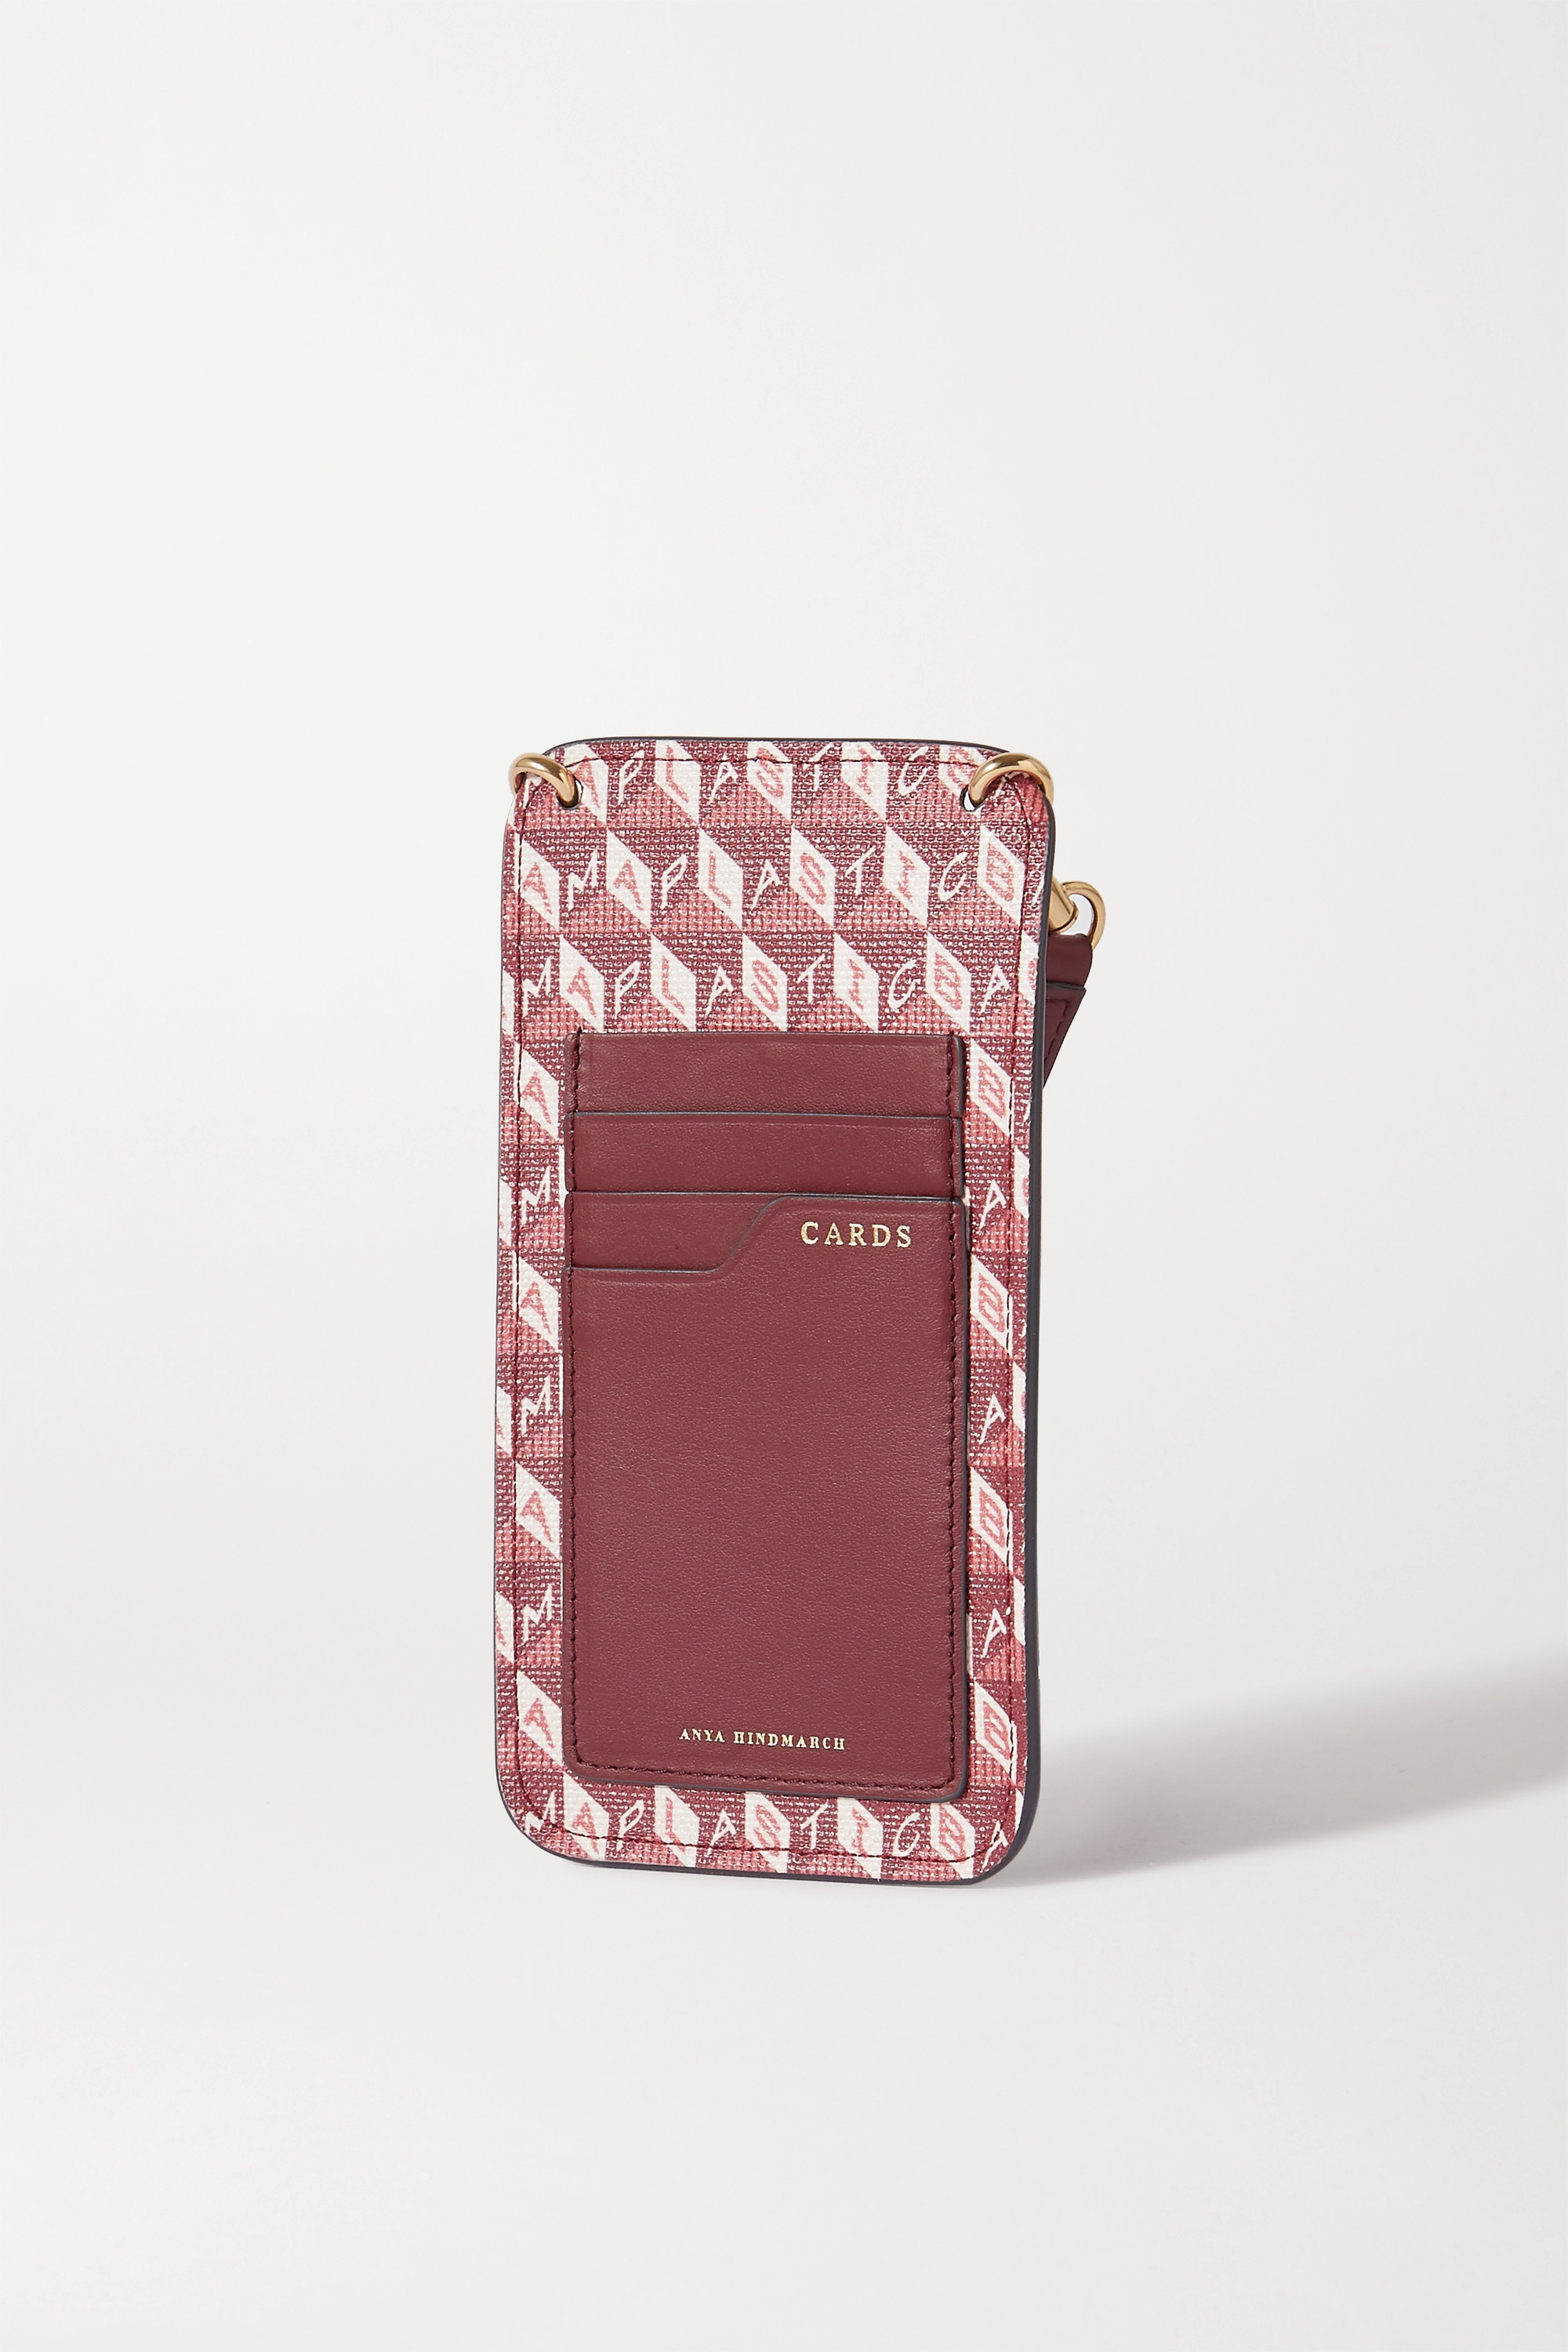 Anya Hindmarch I Am a Plastic Bag leather-trimmed printed coated-canvas phone case